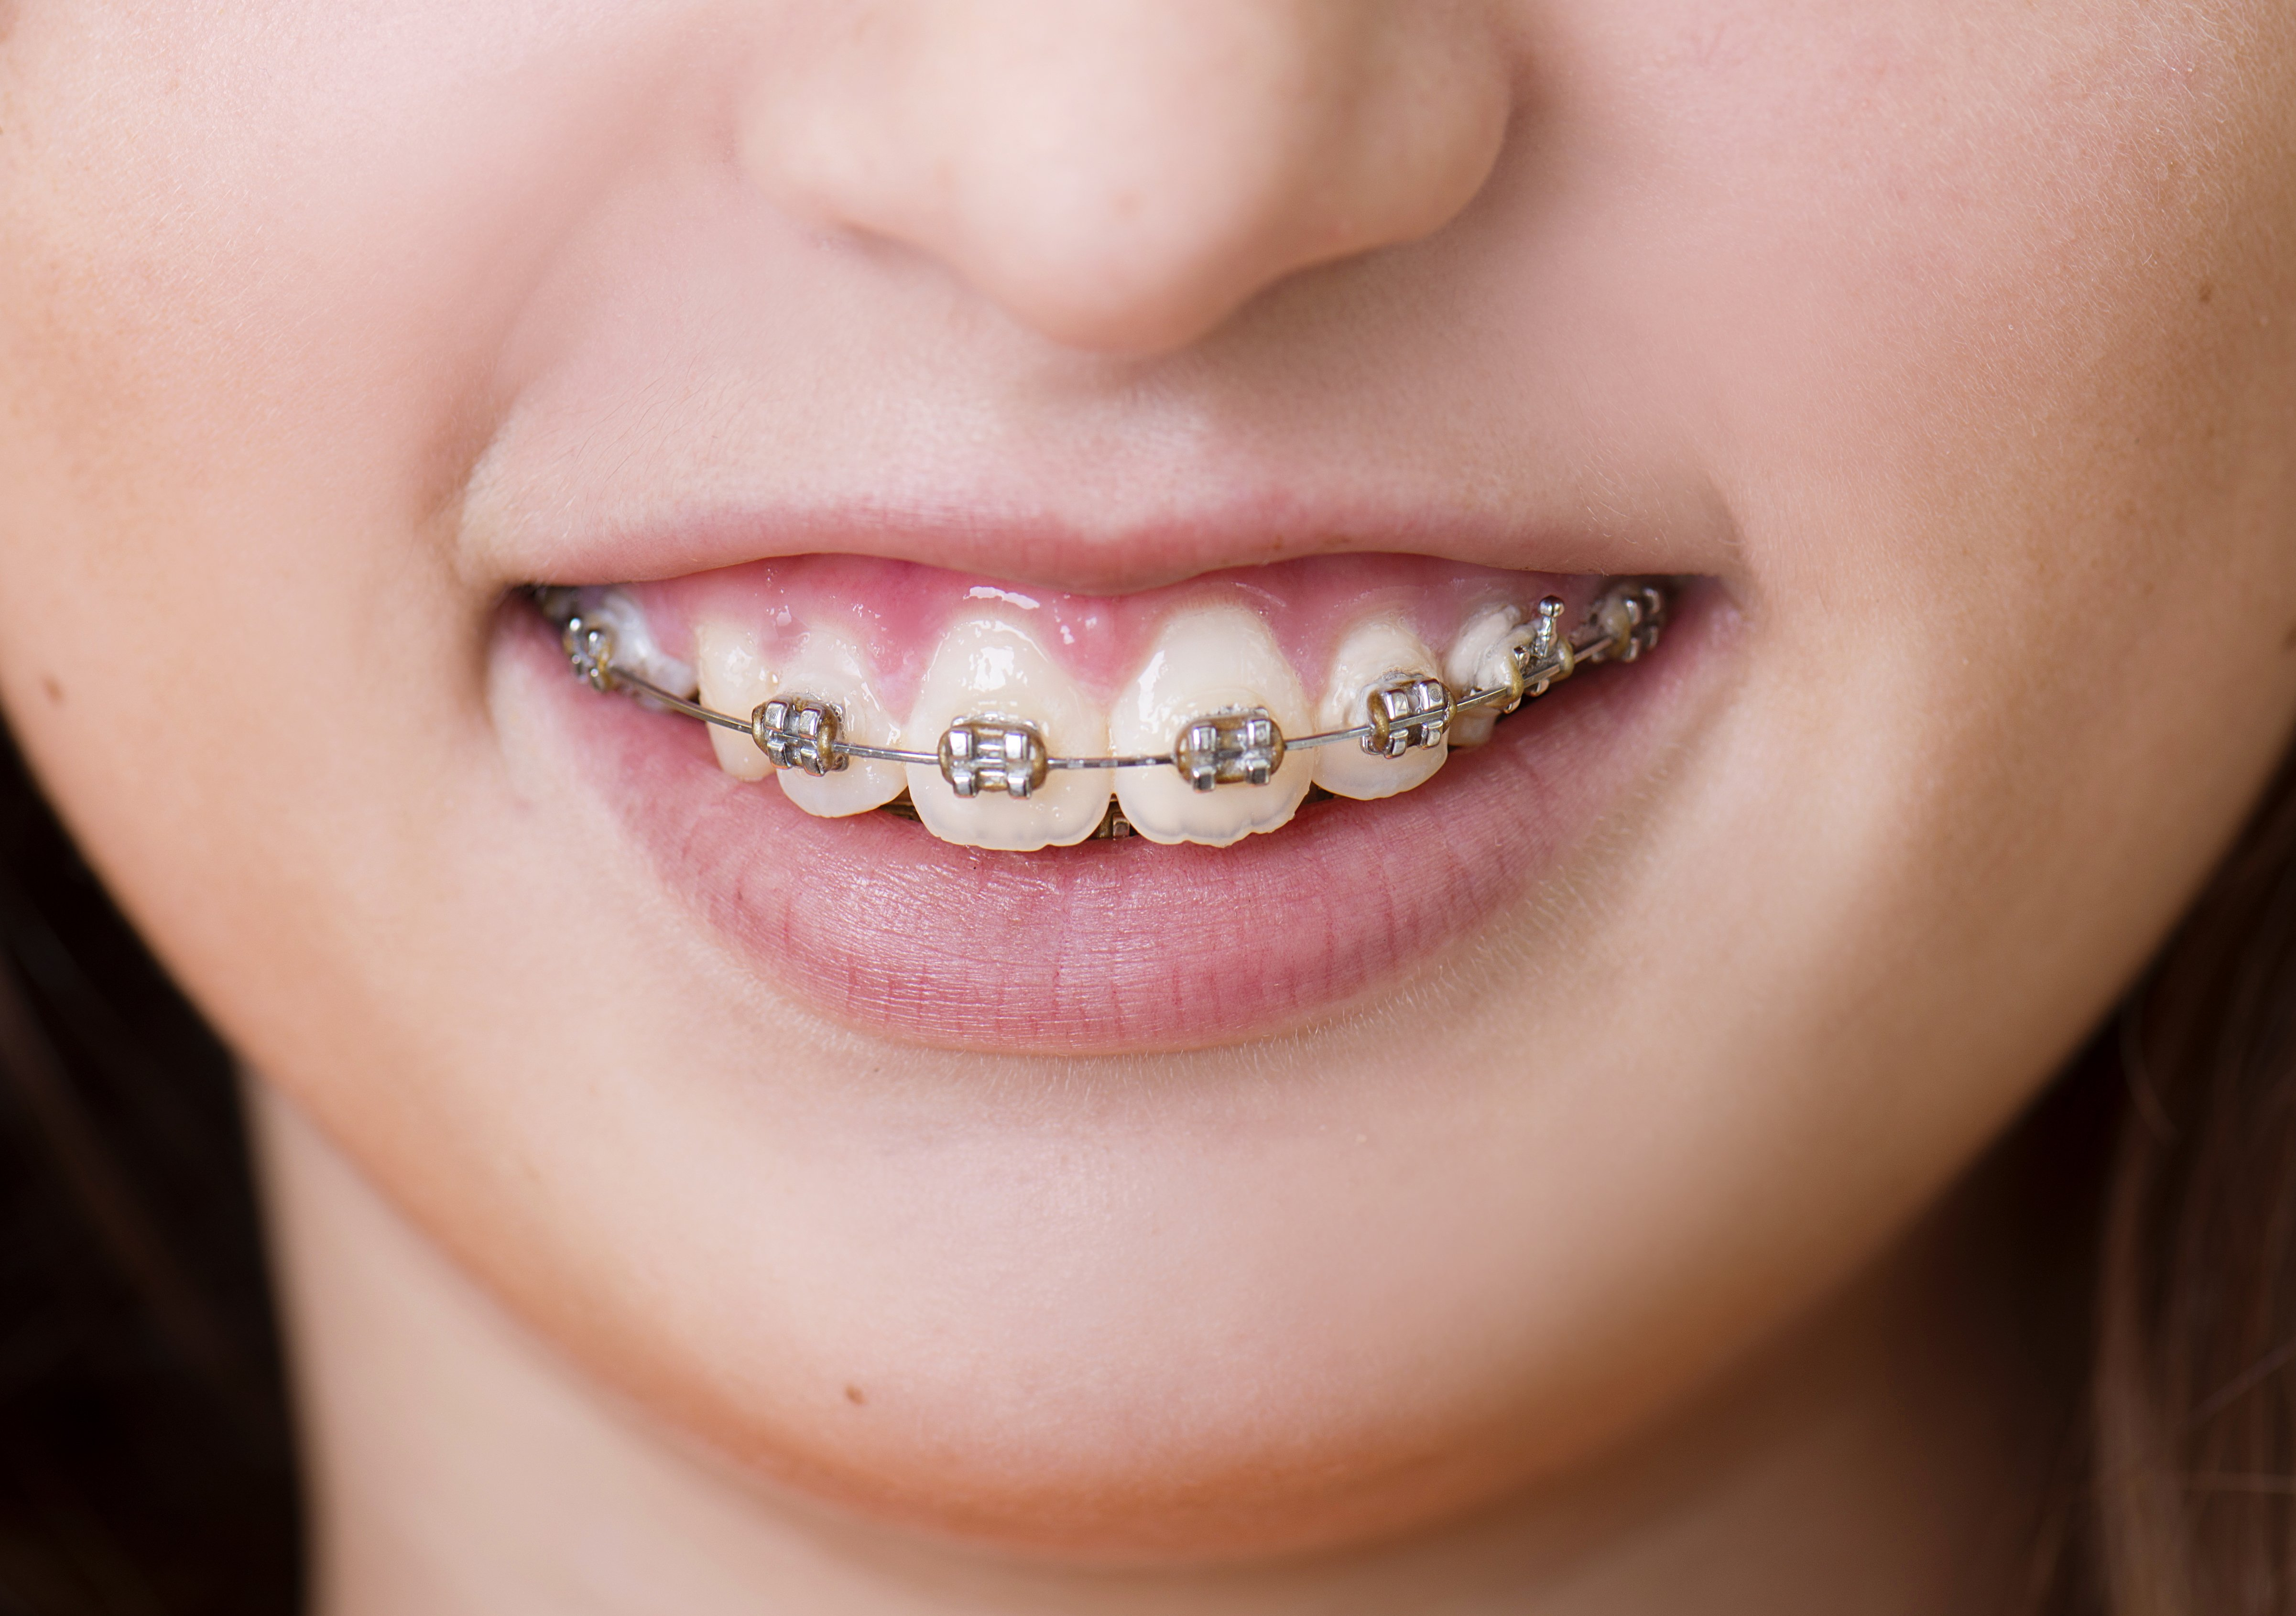 Do it yourself braces archives a lifetime of smiles a lifetime of diy braces can be dangerous solutioingenieria Image collections